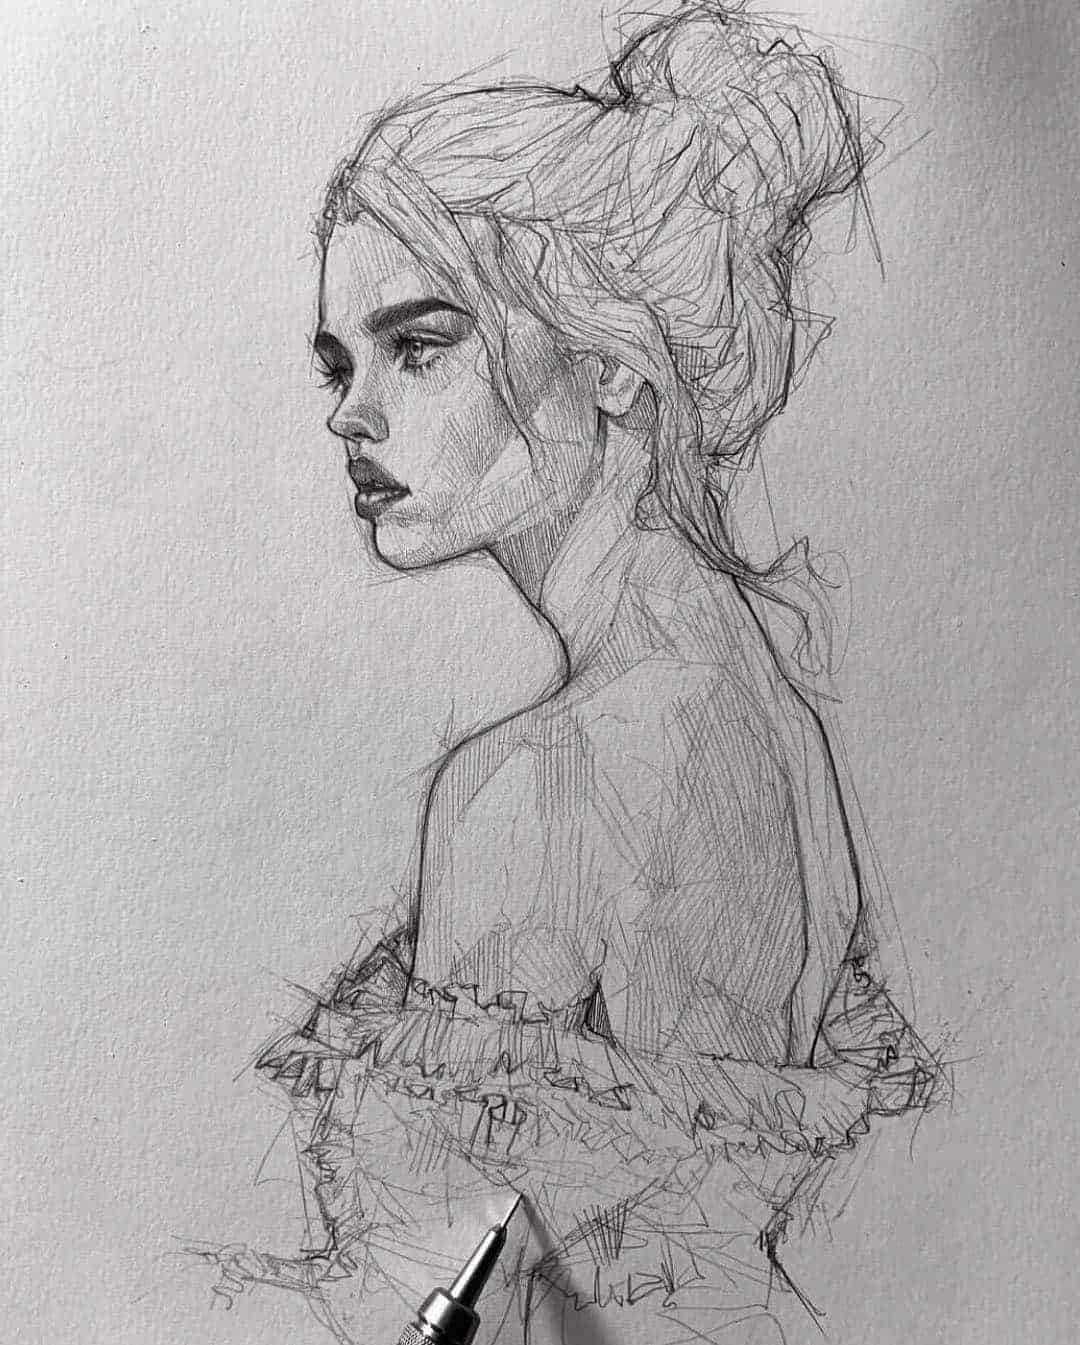 pencil sketch artist efraín